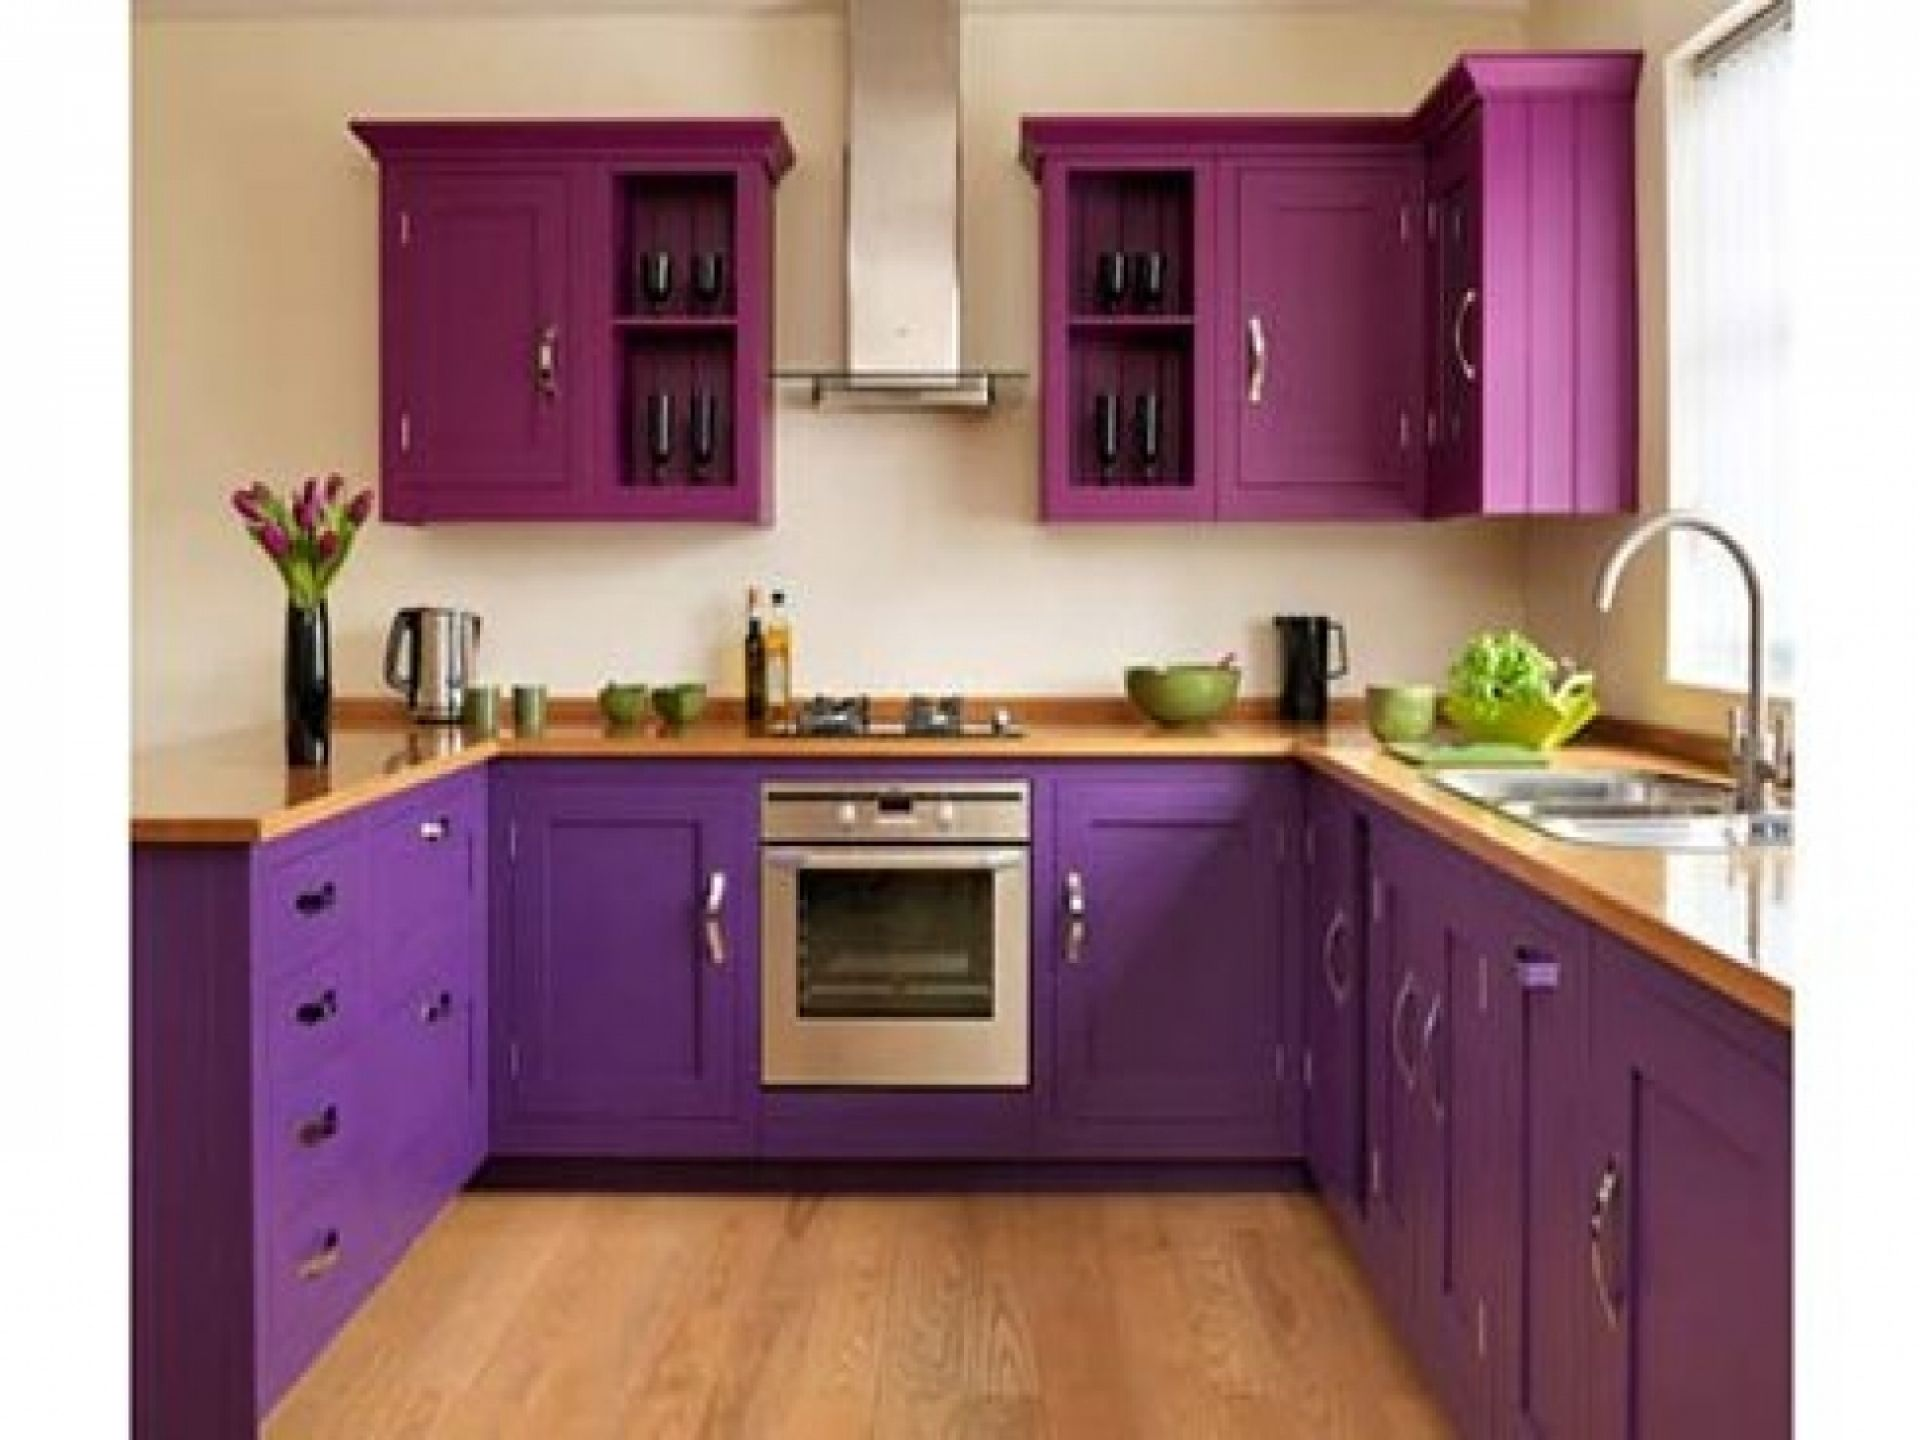 amazing purple kitchen decorating ideas | Pin by Ellen Mahloy on Beach Decor - Bright Colors ...